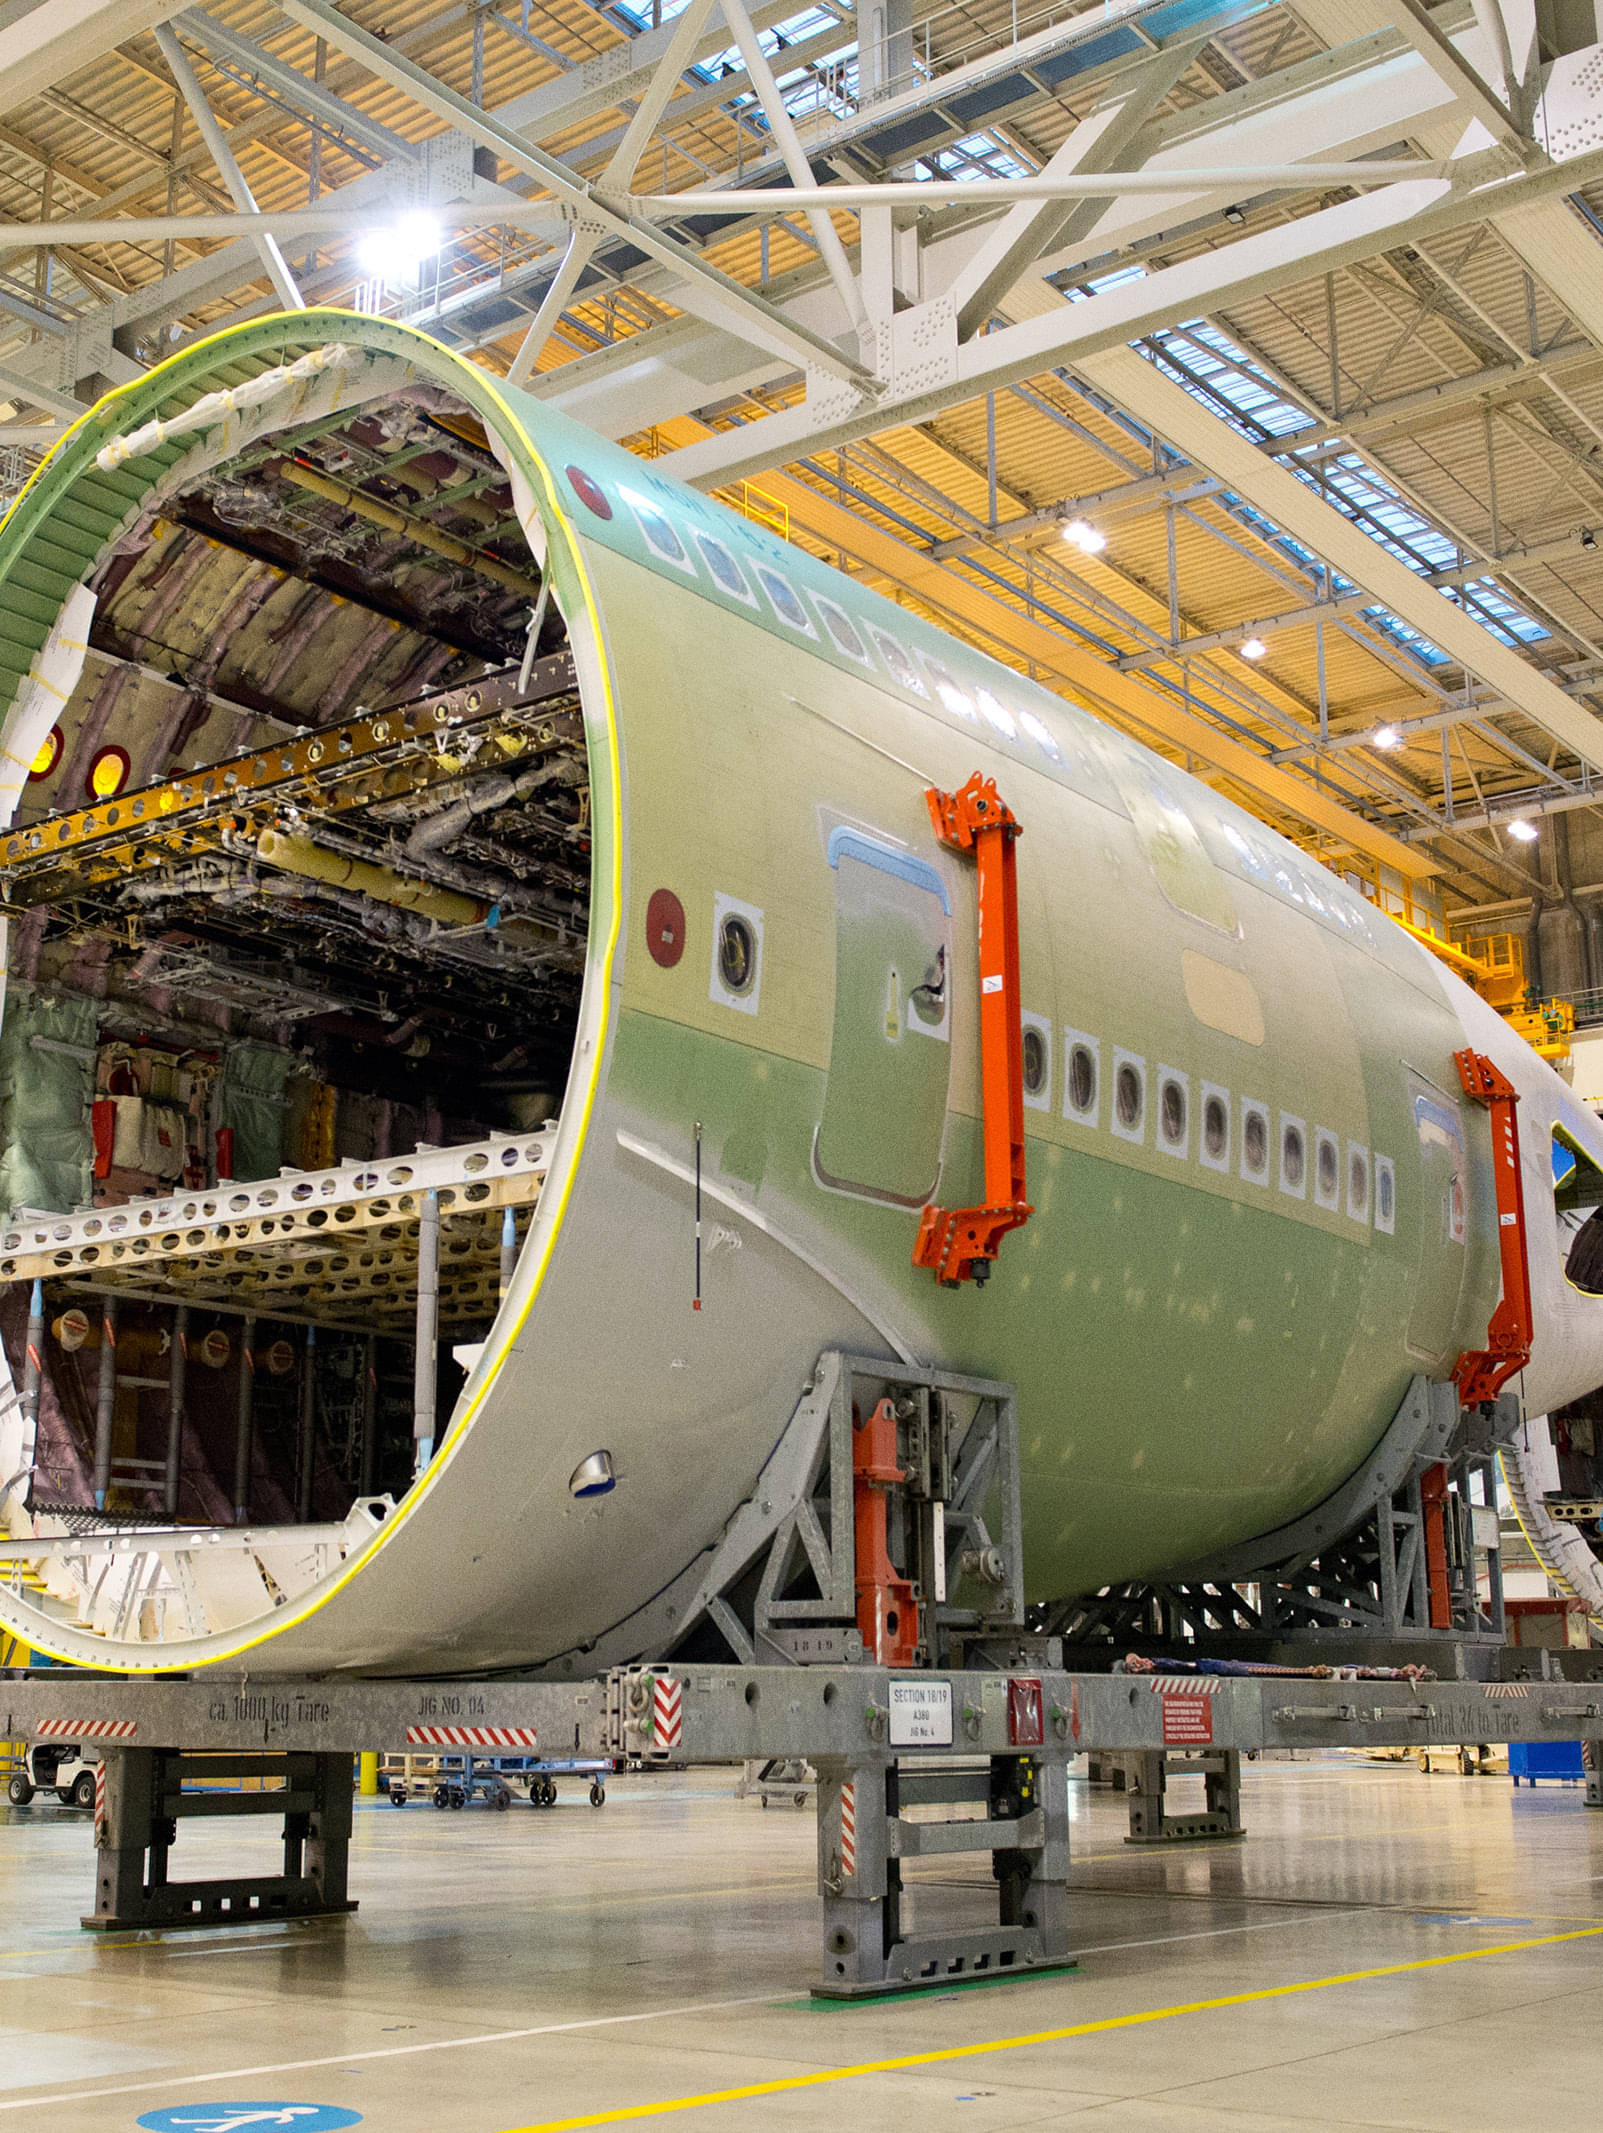 AIRBUS TO CUT OVER 2,300 JOBS AT DEFENSE AND SPACE DIVISION